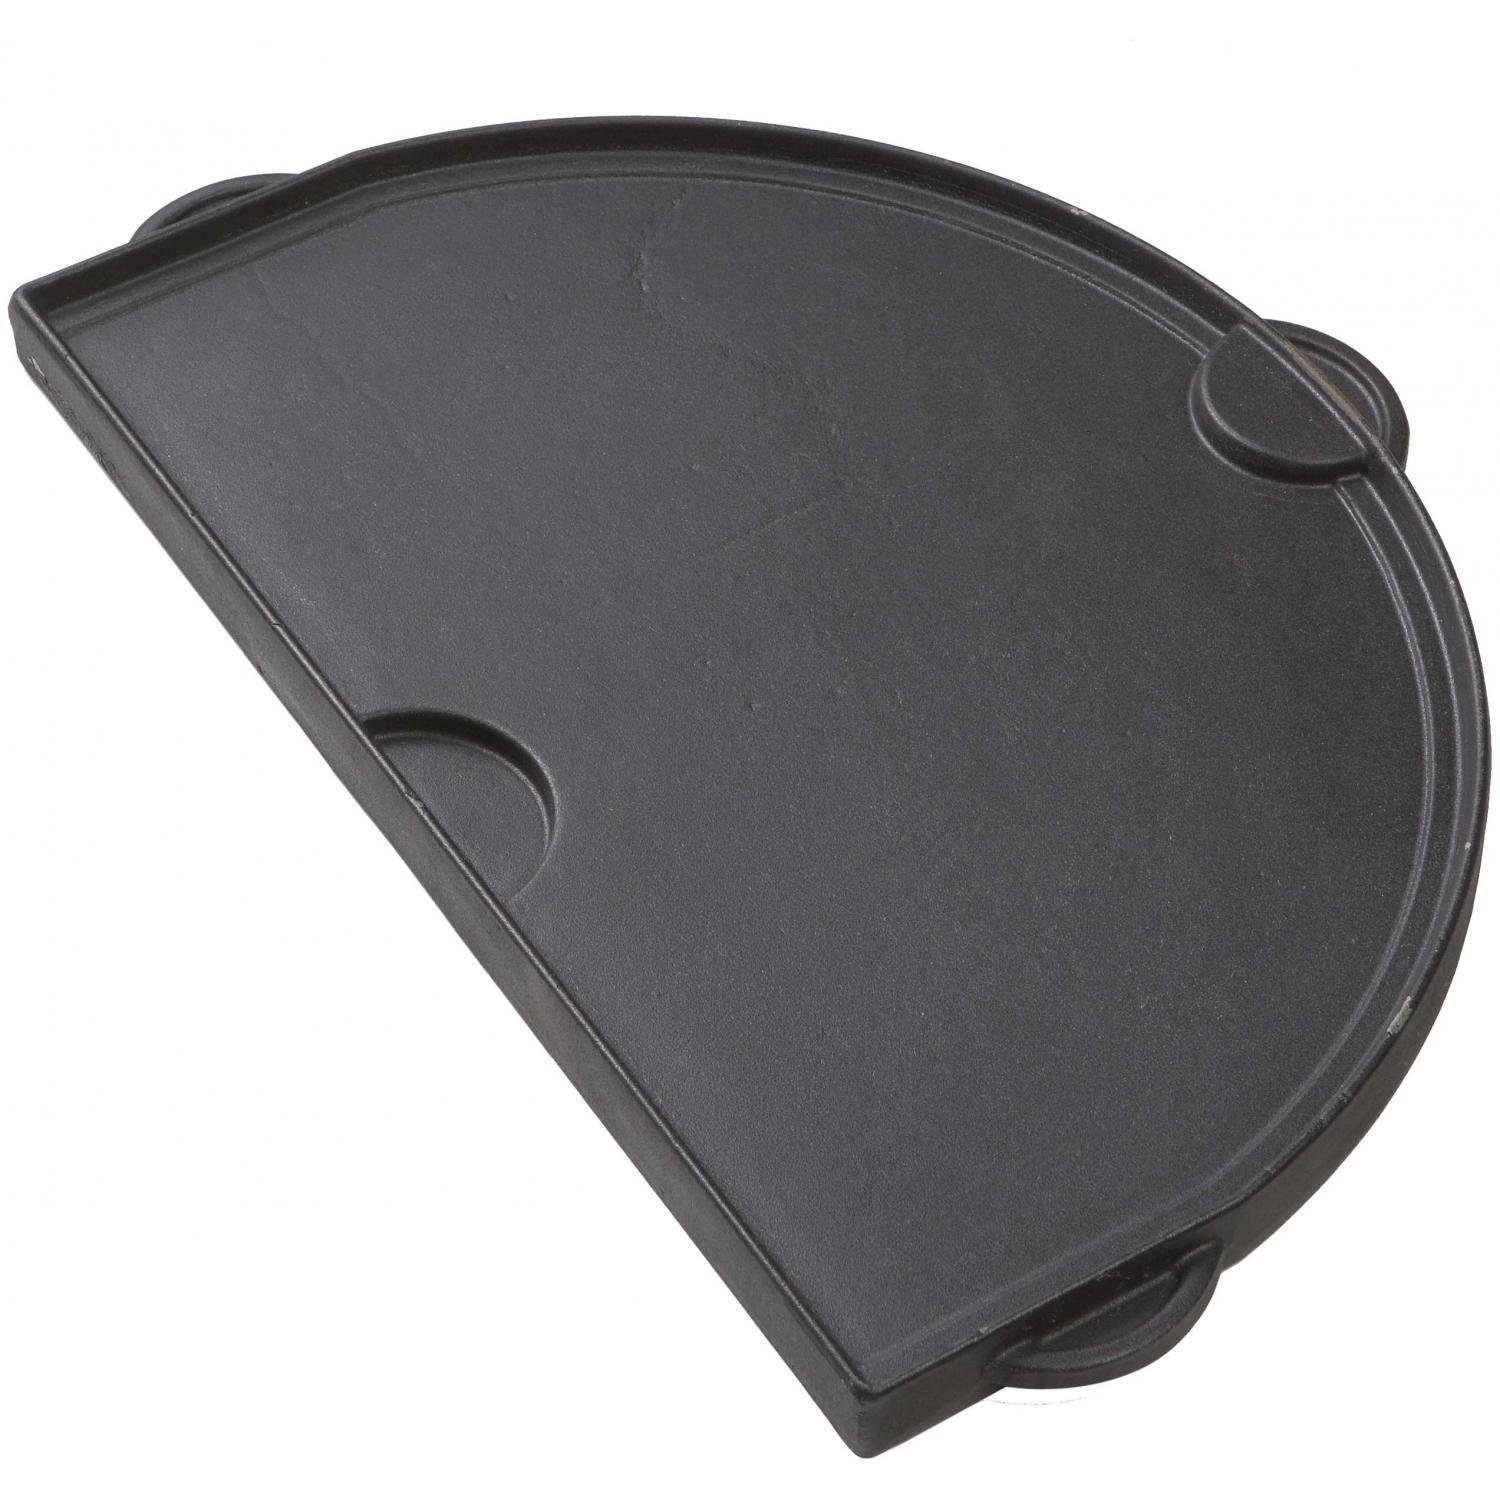 Primo PGS-95-0360 Griddle, Extra Large, Black by Primo